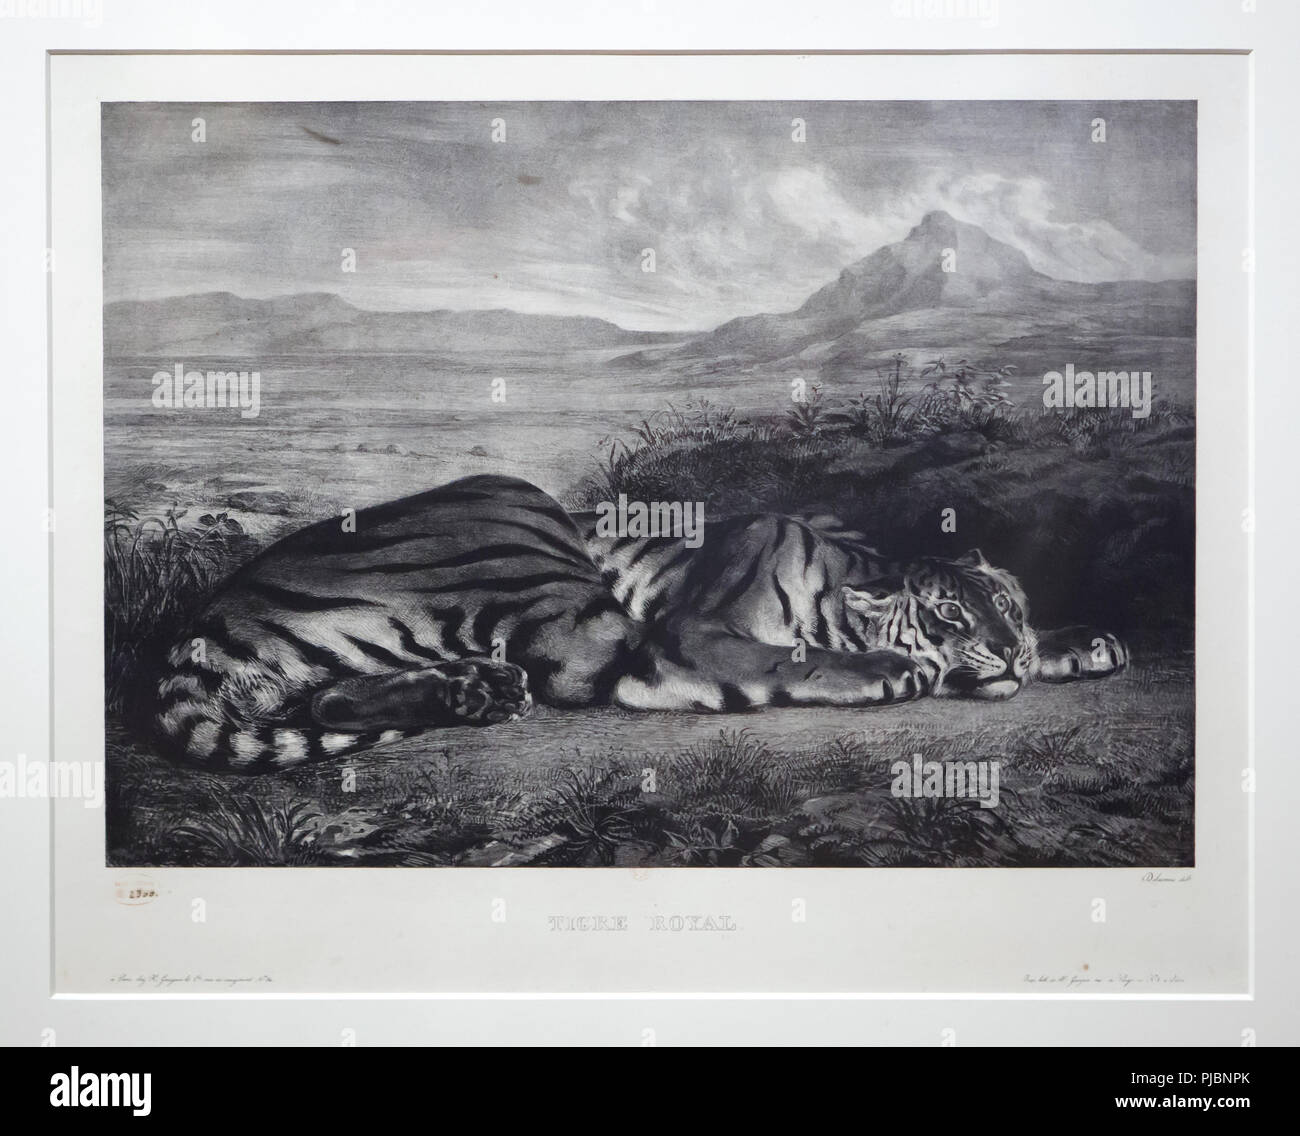 Lithography 'Royal Tiger' (1829-1830) by French Romantic artist Eugène Delacroix displayed at his retrospective exhibition in the Louvre Museum in Paris, France. The exhibition presenting the masterpieces of the leader of French Romanticism runs till 23 July 2018. - Stock Image